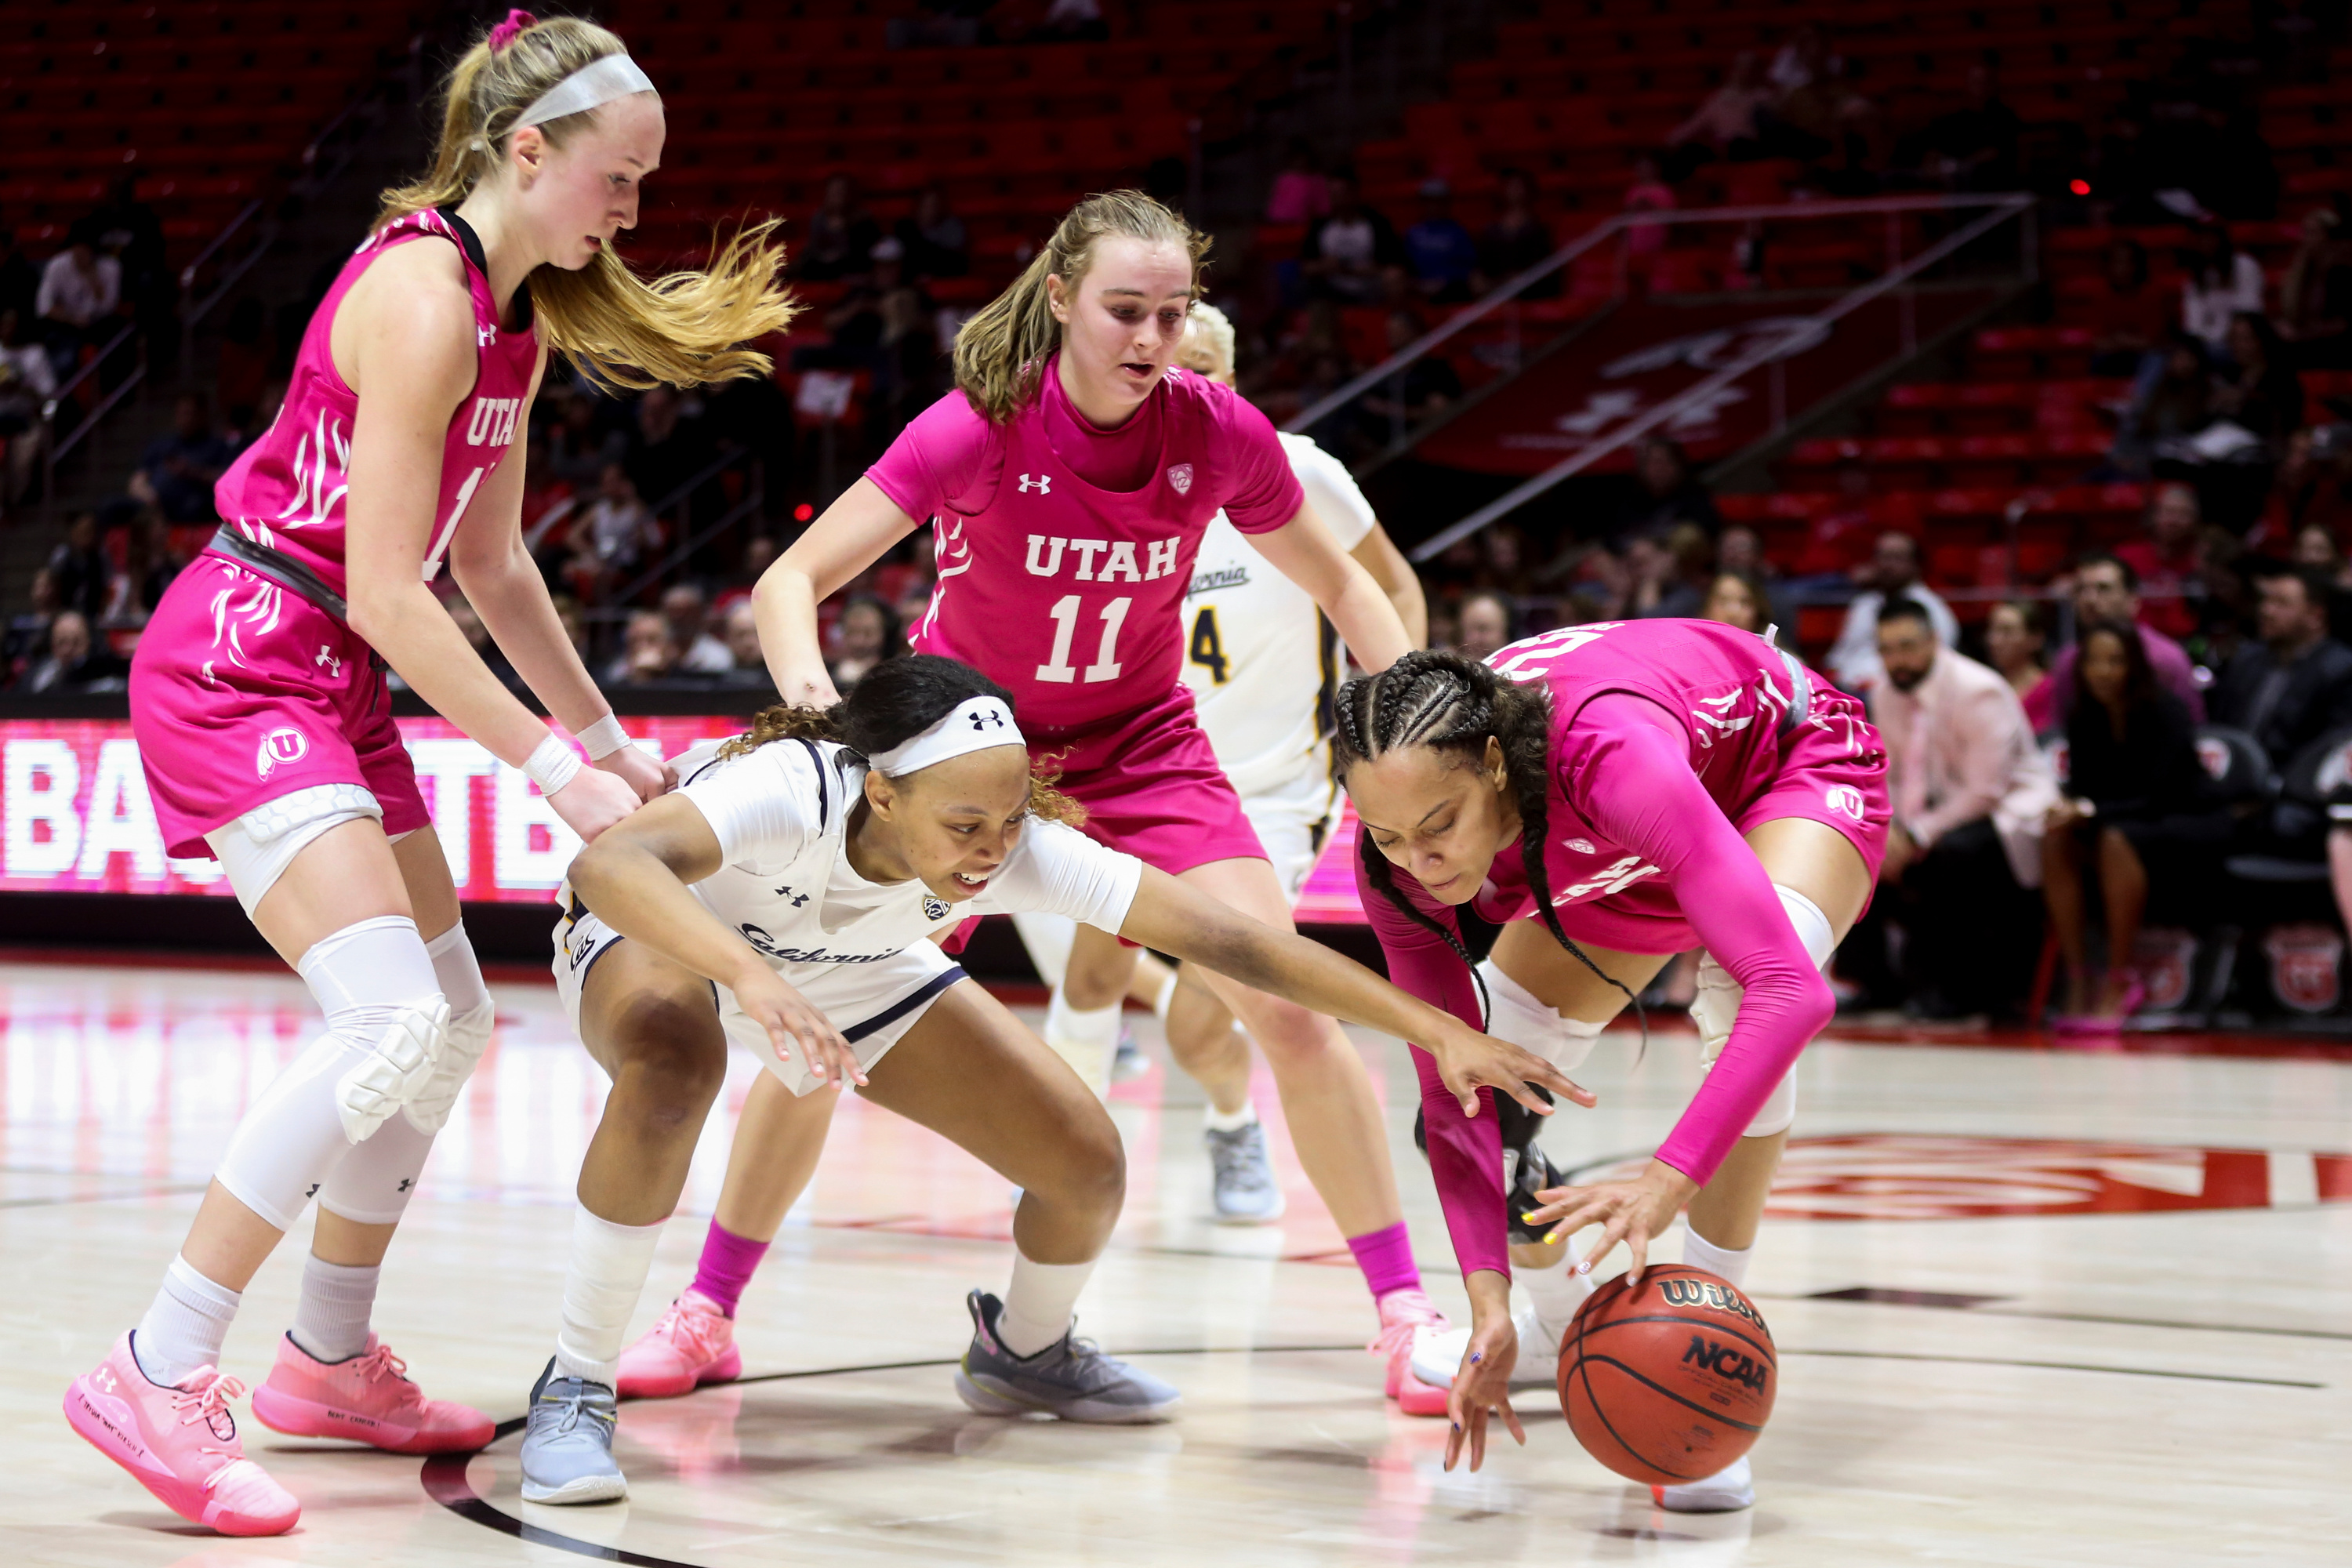 California Golden Bears guard Cailyn Crocker (2) attempts to steal the ball from Utah Utes guard Daneesha Provo (23) while guard Dru Gylten (10) and guard Brynna Maxwell (11) play offense at the Jon M. Huntsman Center in Salt Lake City on Sunday, Feb. 16, 2020.